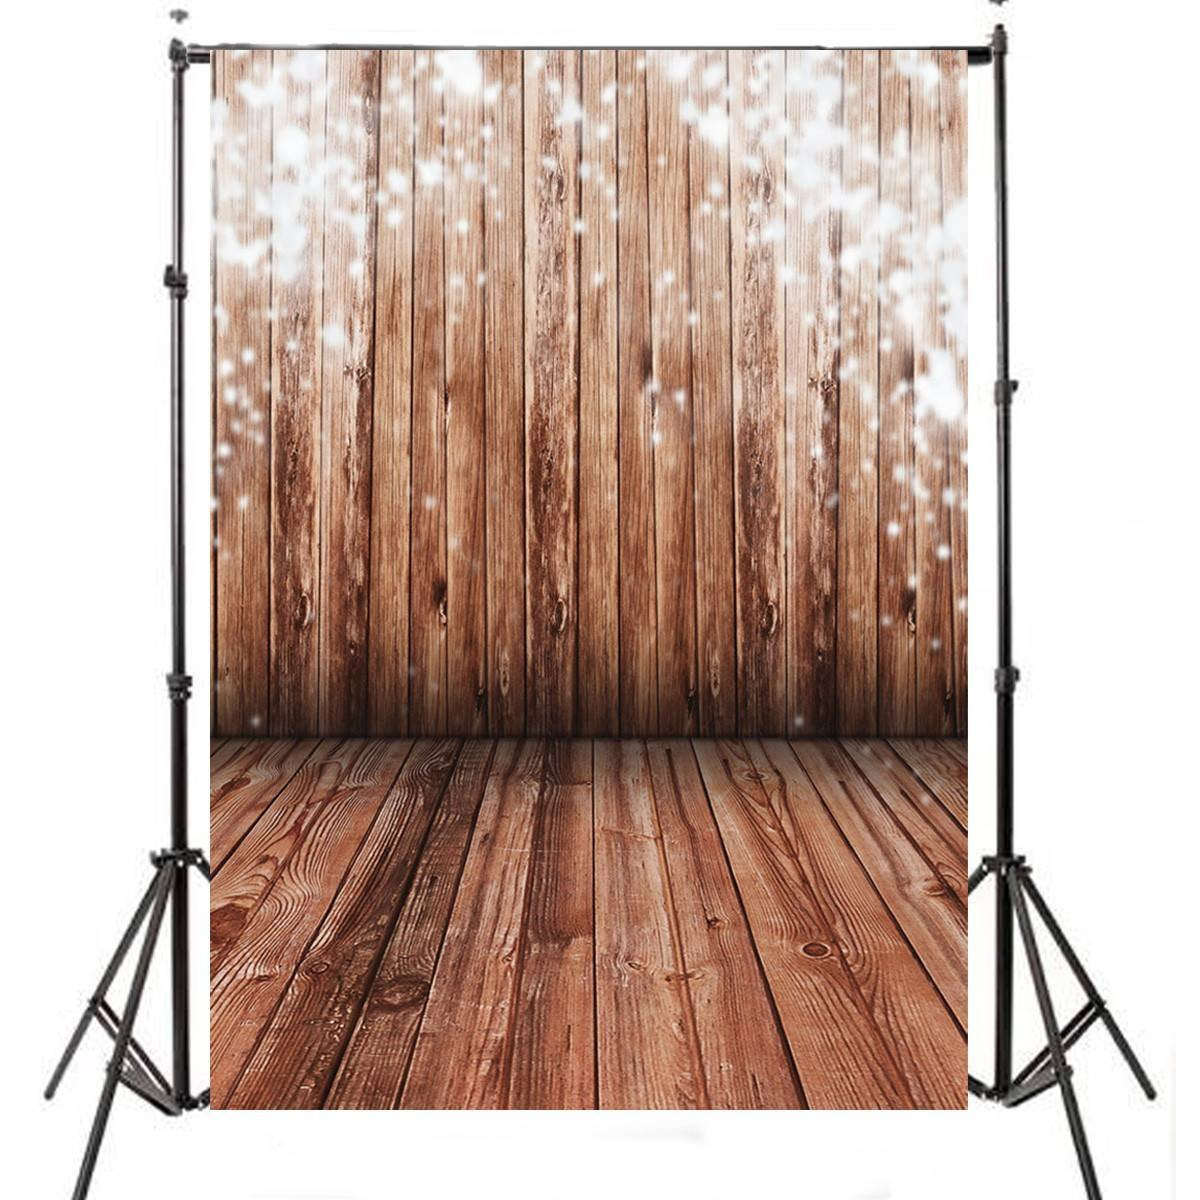 5x7FT Wood Wall Vinyl Photography Backdrop Photo Background Studio Props High Quality New Best Price paw patrol photo background photography backdrop quality vinyl